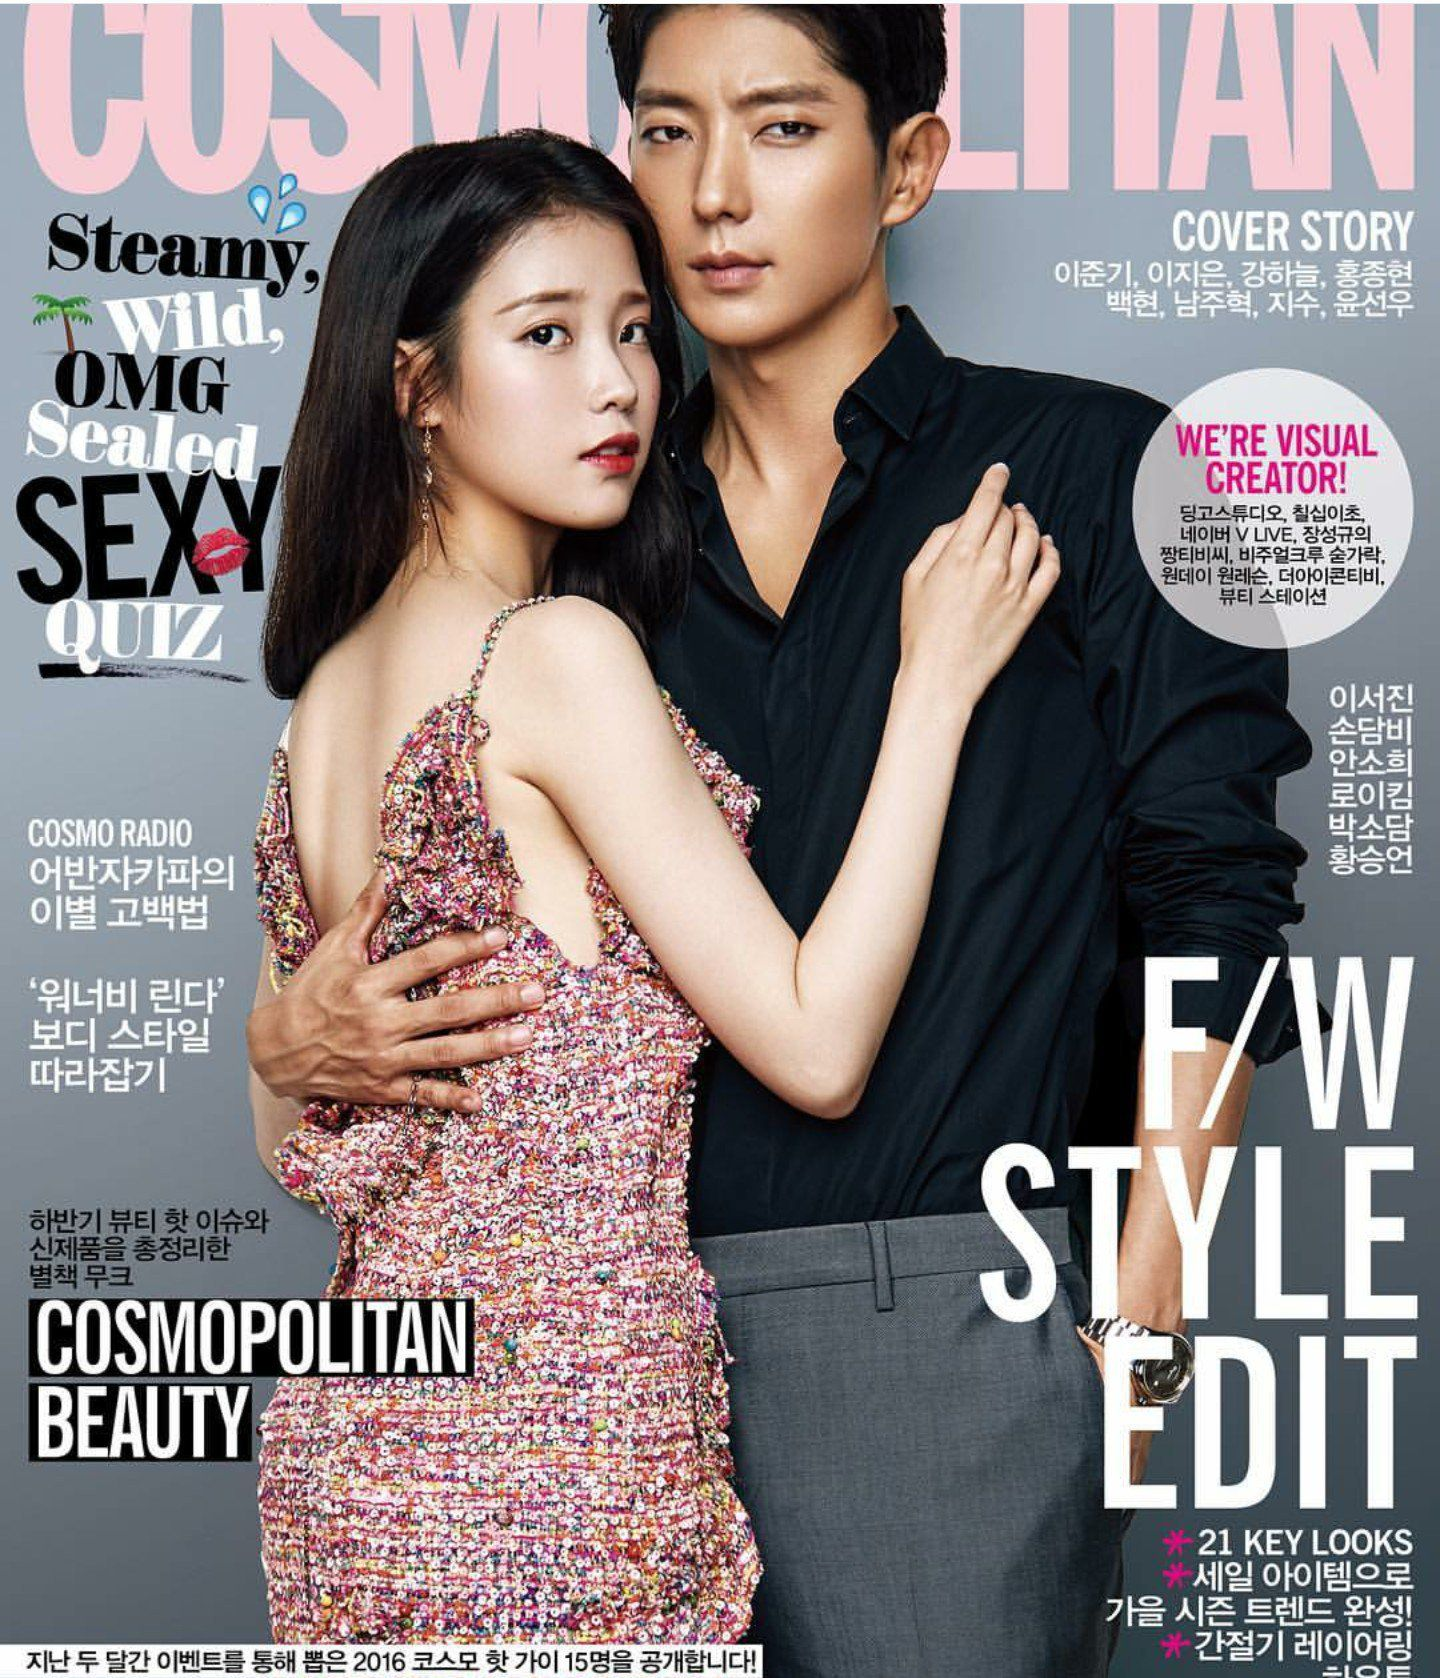 Moon lovers scarlet heart ryeo episode 2 2016 - Iu Lee Joon Gi And Scarlet Heart Goryeo Cast Look Like Modern Royalty For Cosmopolitan